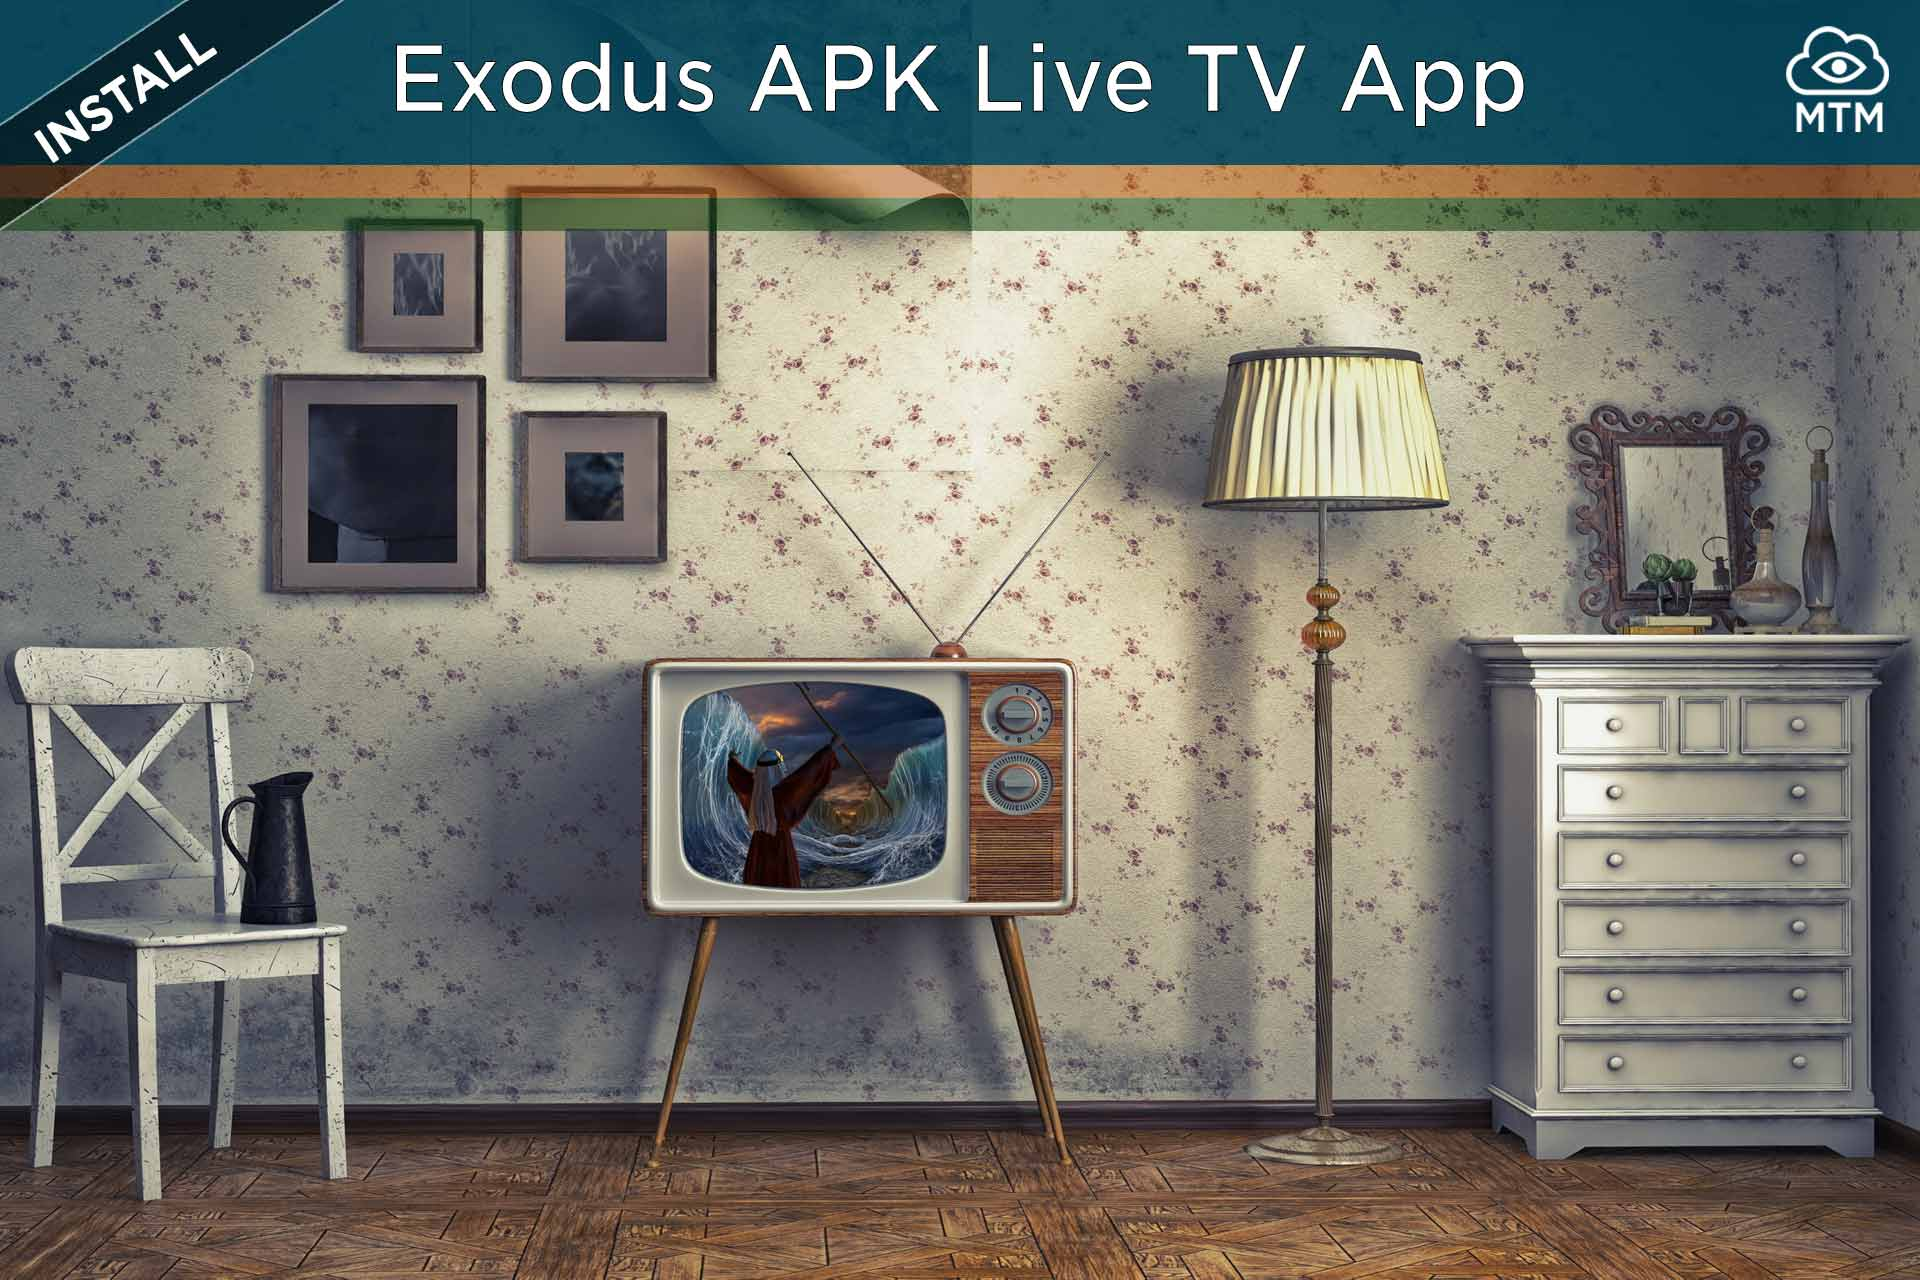 Exodus live tv apk not working | no streams work on tv box